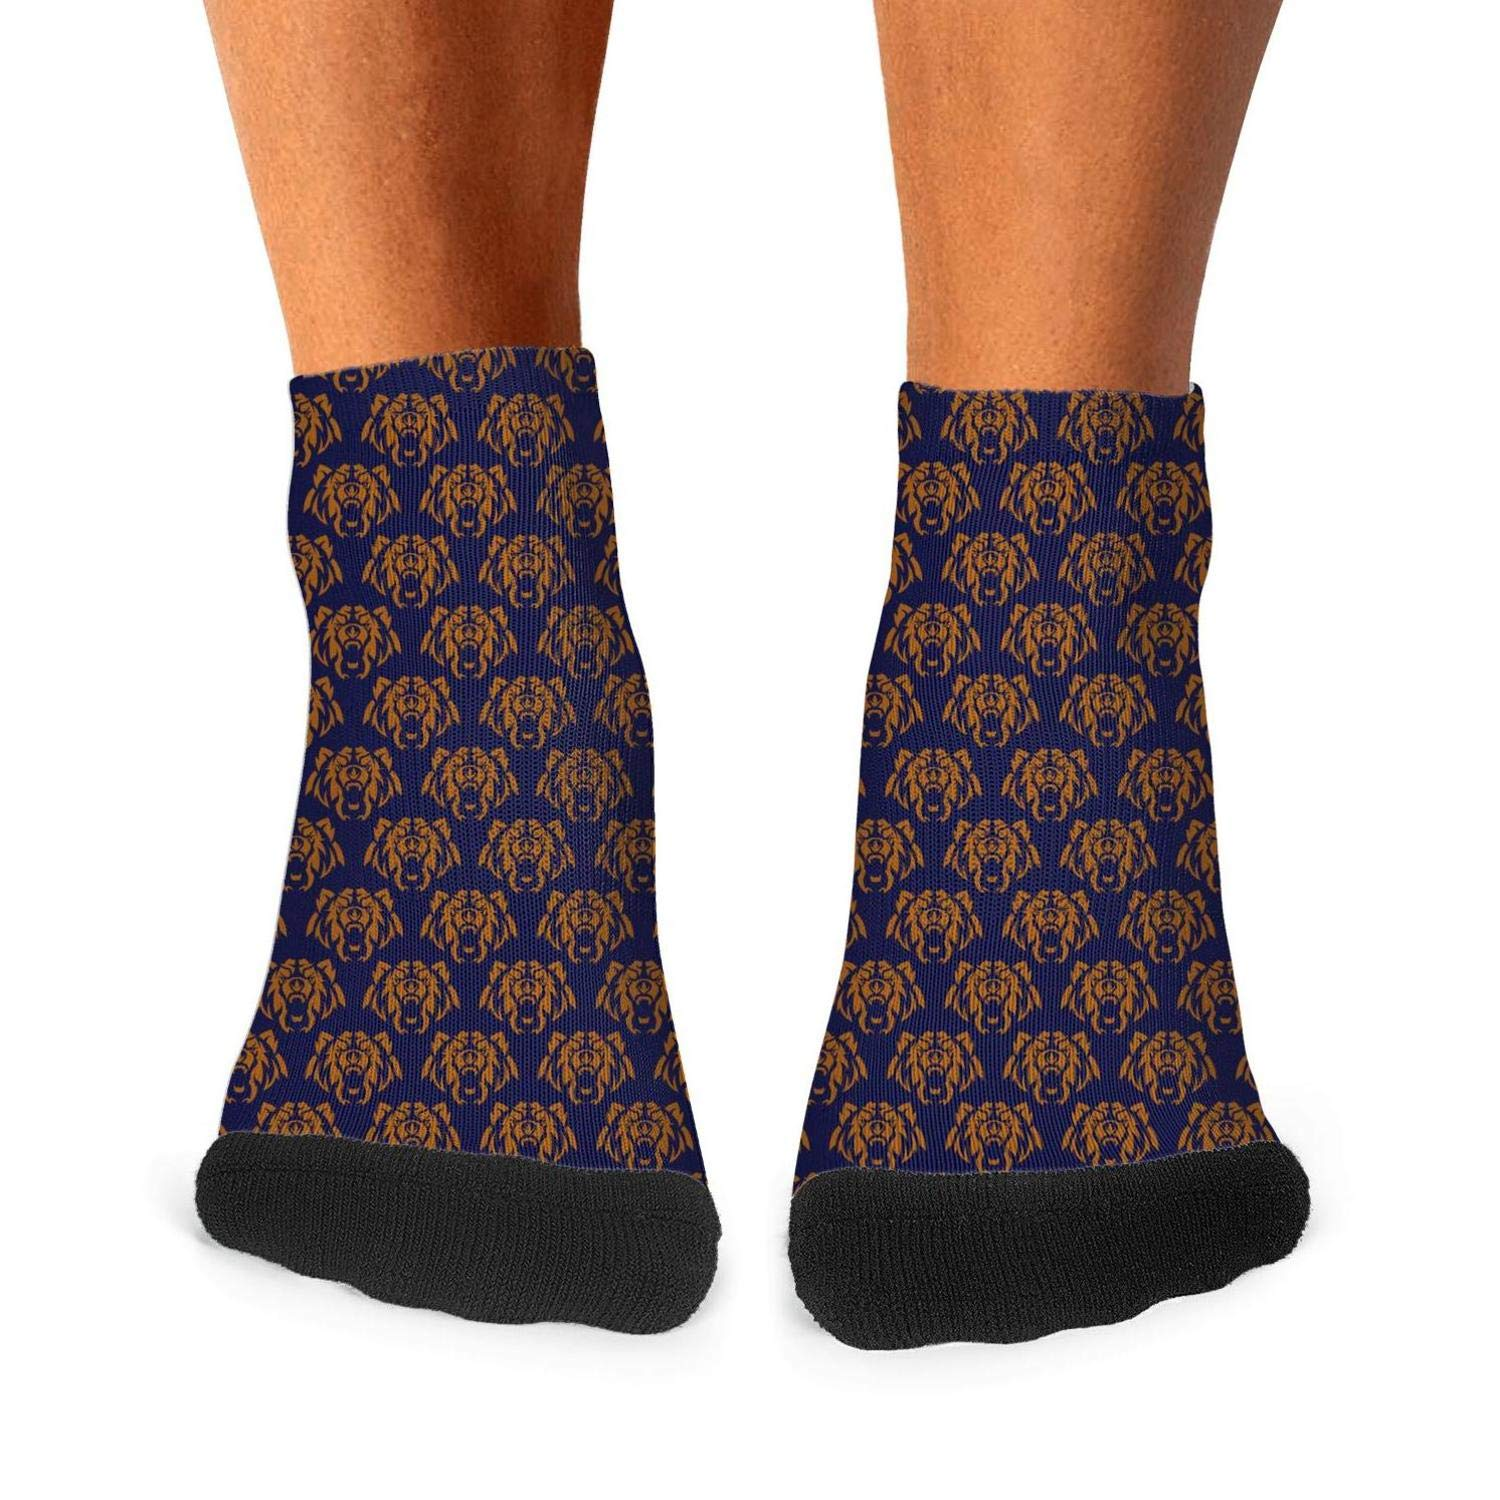 Mens Crazy Cool Print Socks Casual Cotton Stocks Fits Shoe Size 7.5-11.5